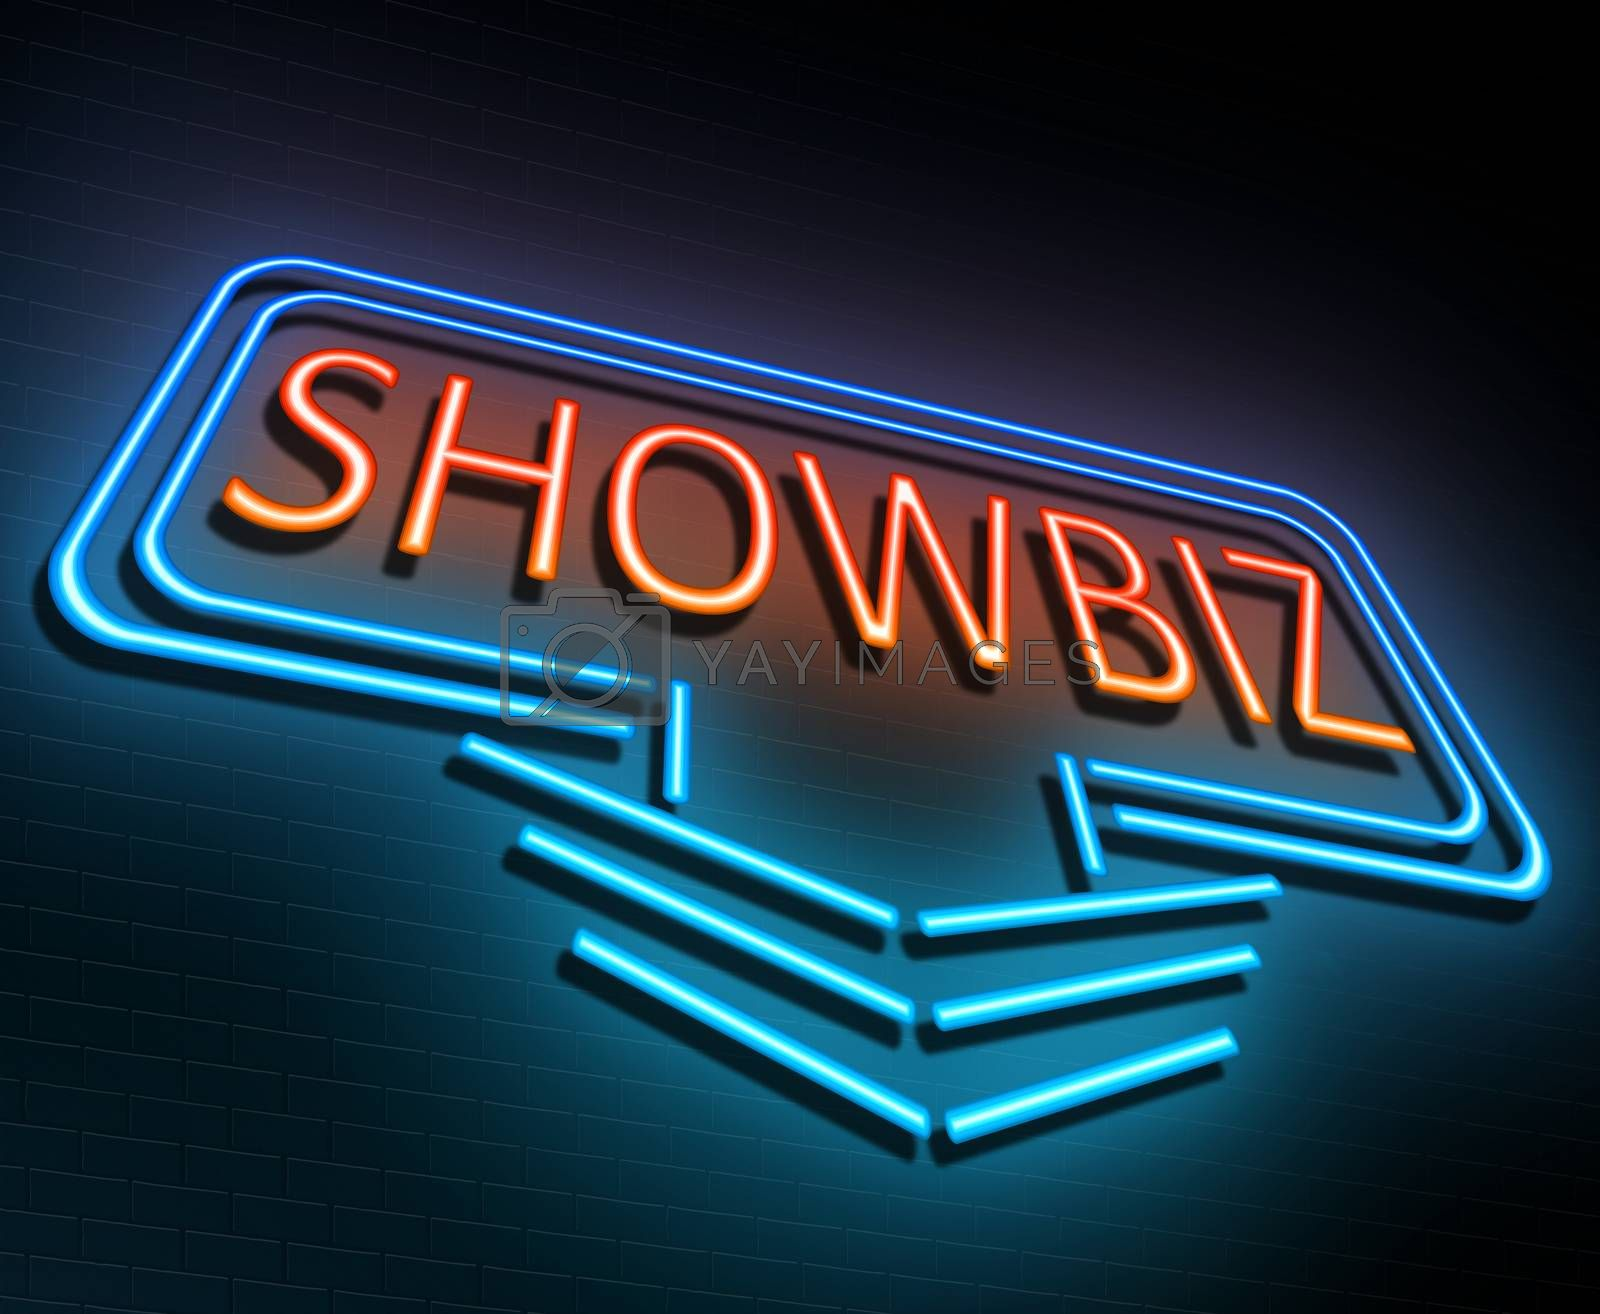 Illustration depicting an illuminated neon sign with a showbiz concept.